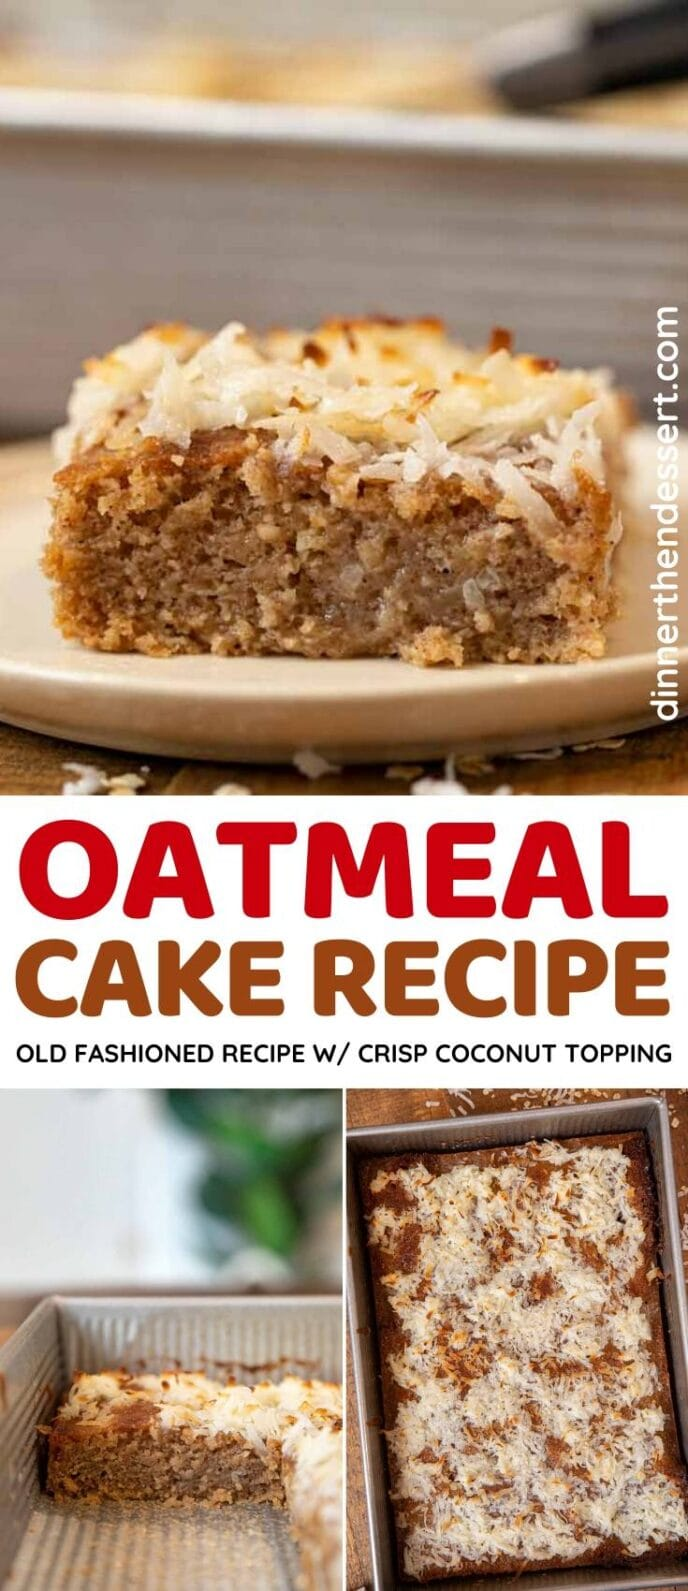 Oatmeal Cake collage